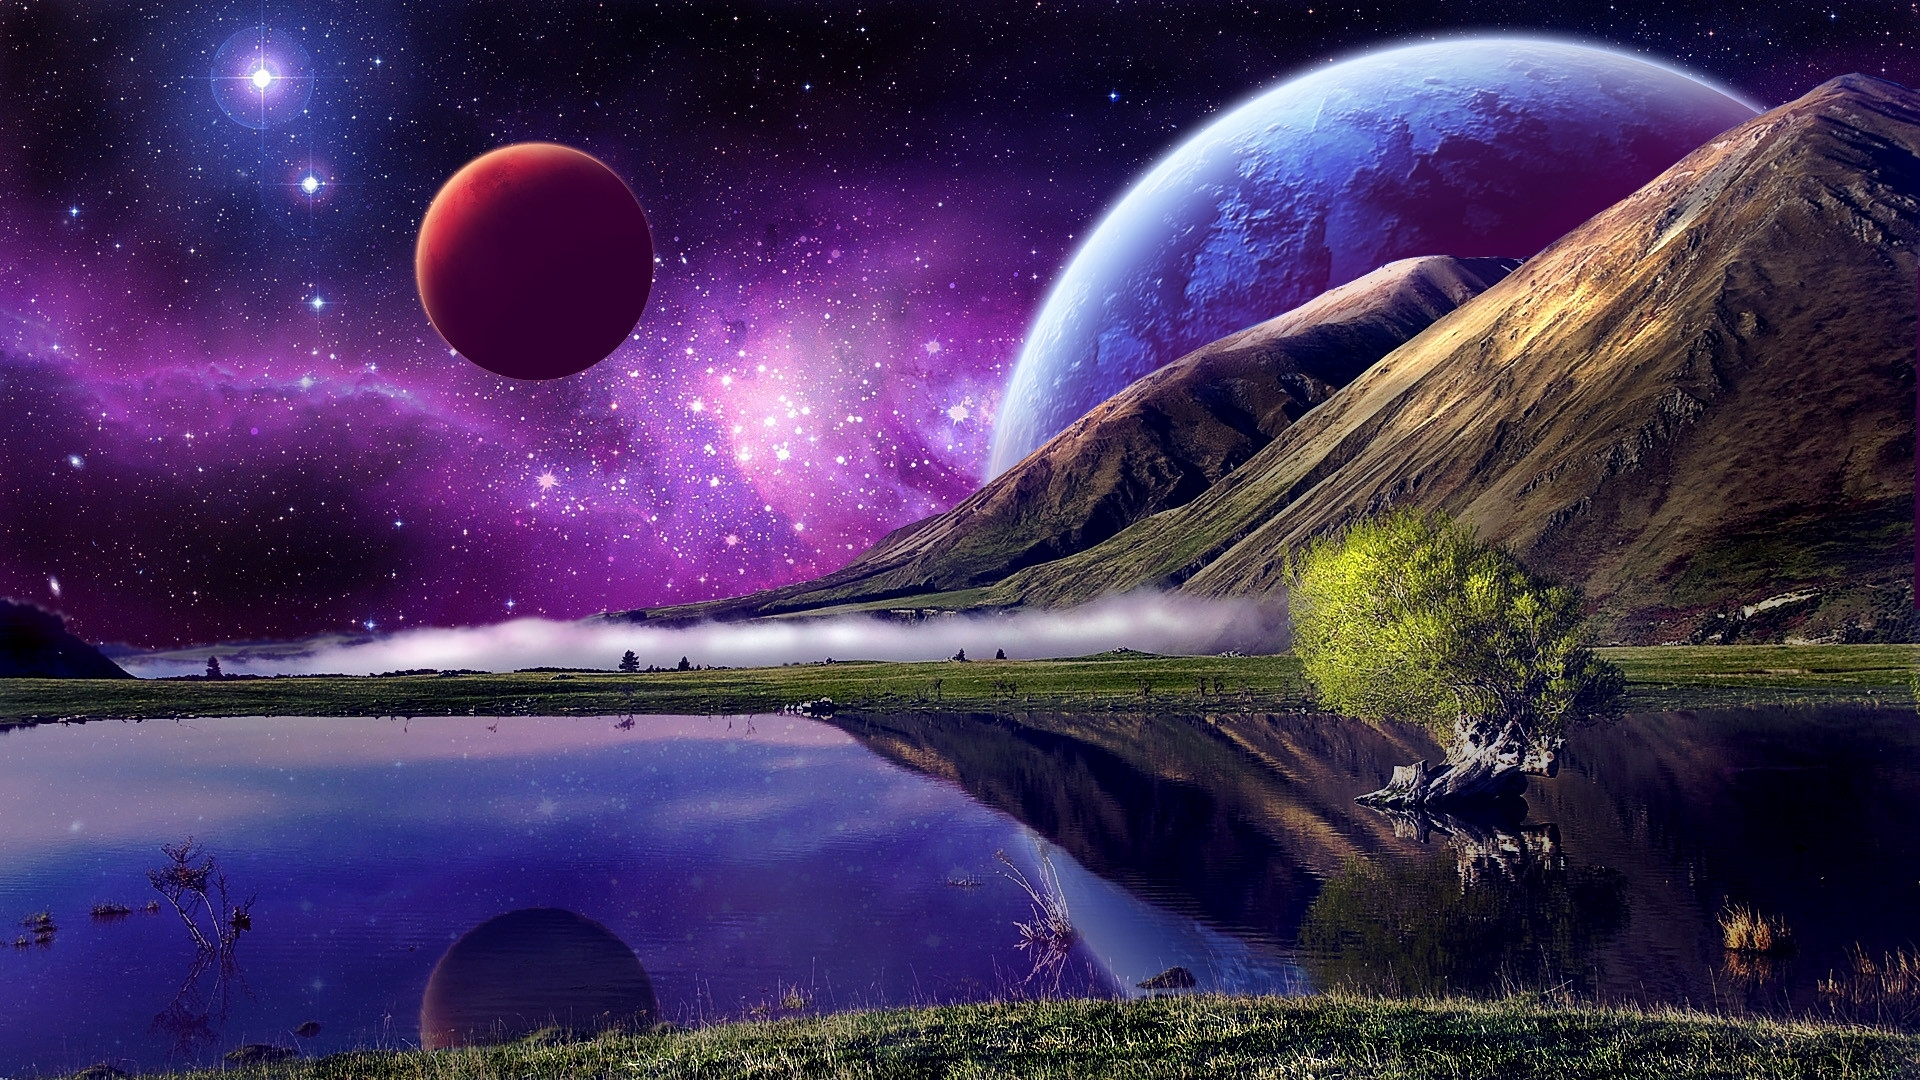 space wallpaper new epic space wallpaper 69 images - hd wallpaper